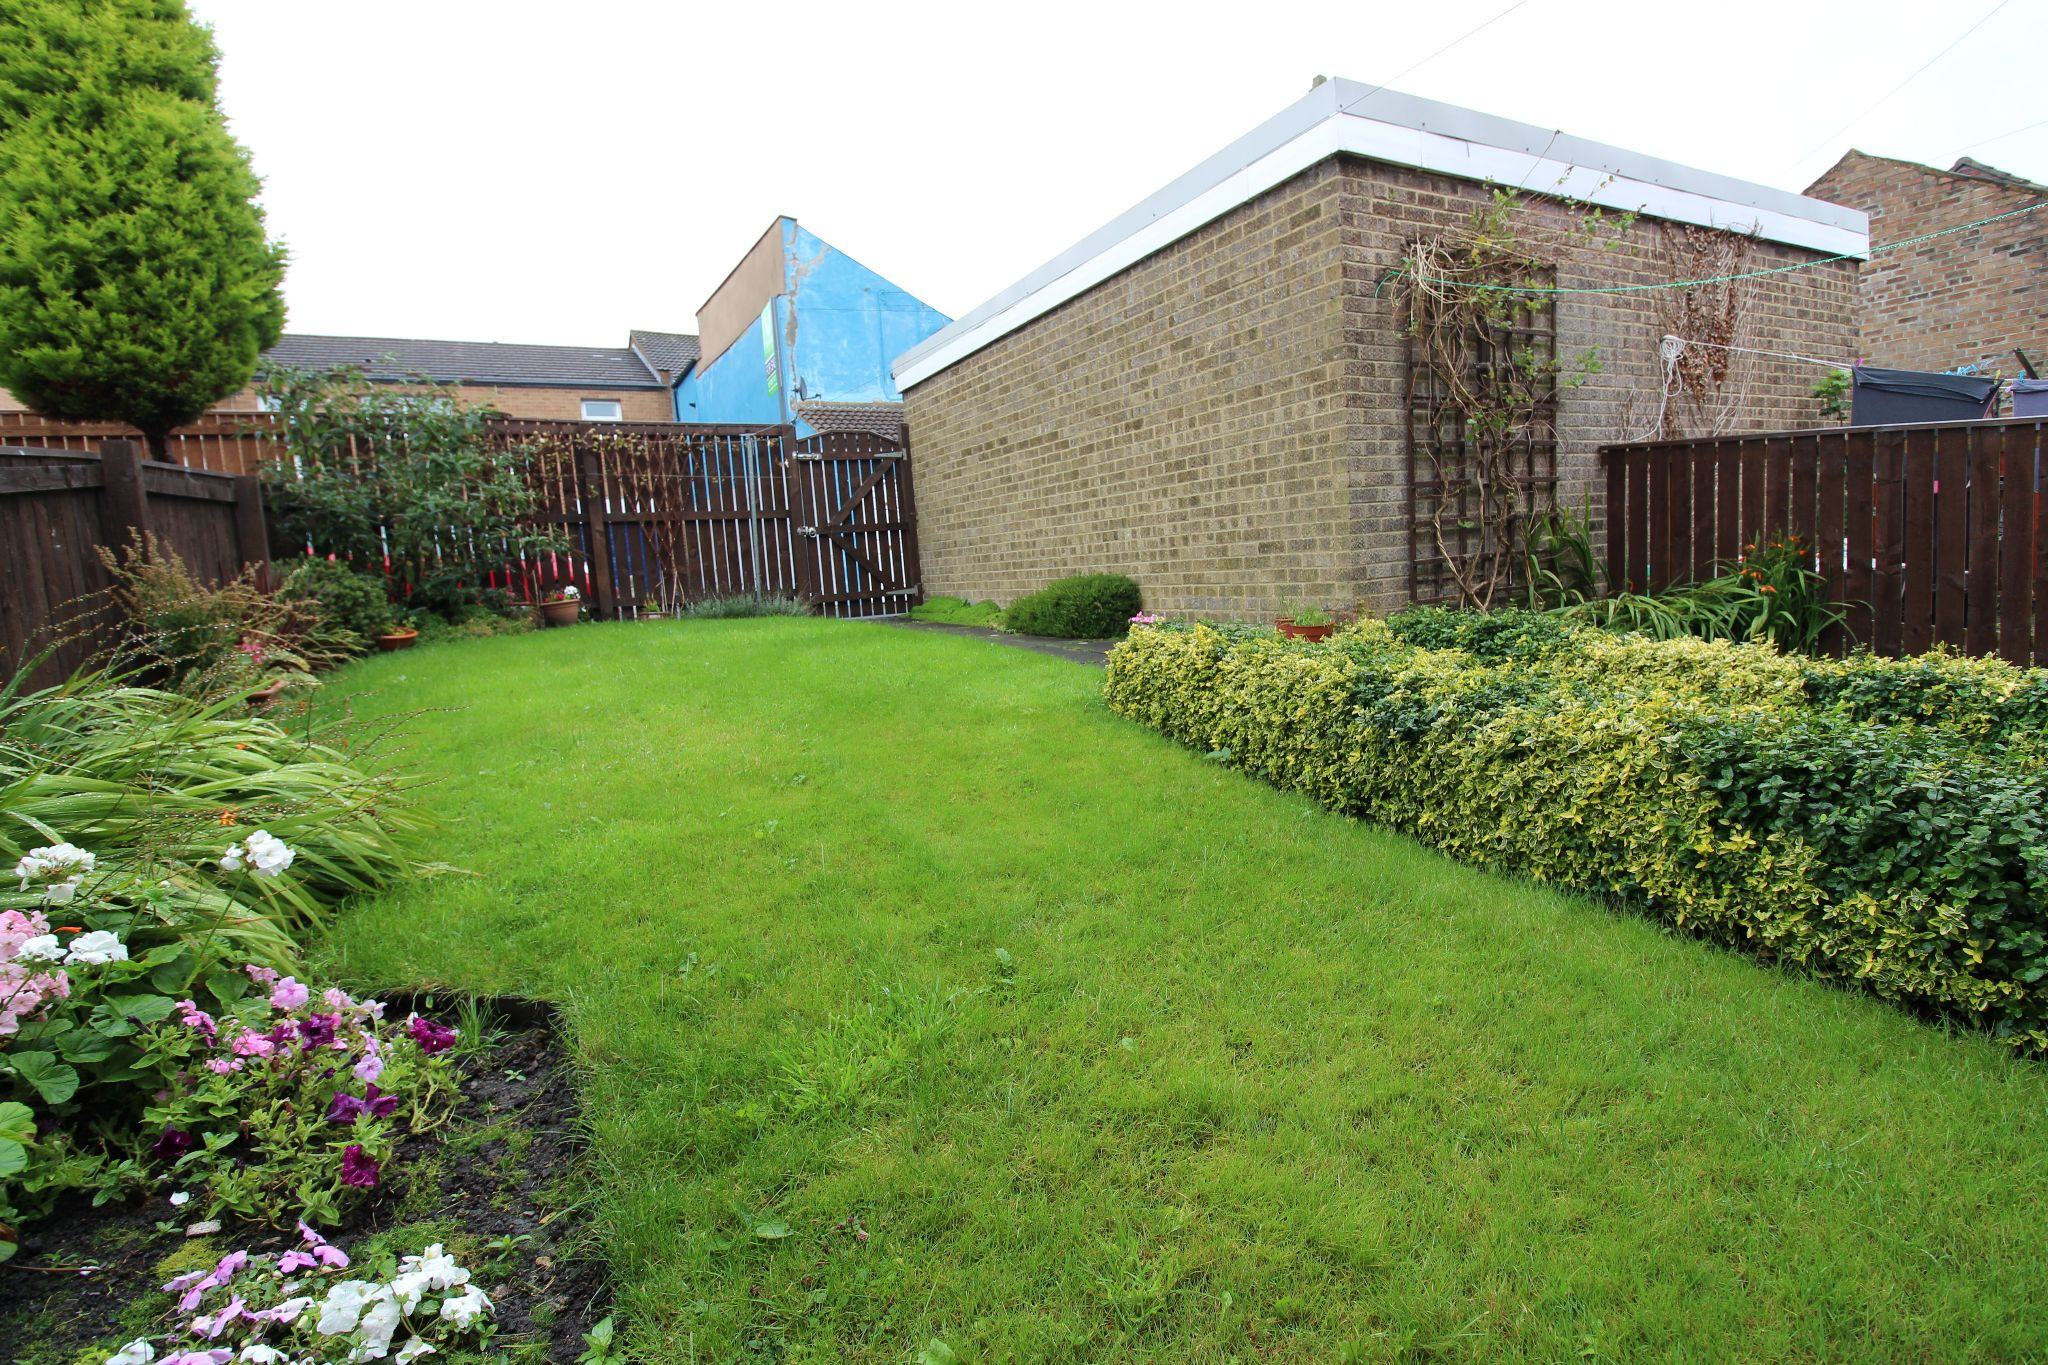 3 bedroom mid terraced house For Sale in Willington And Hunwick - Rear Garden.